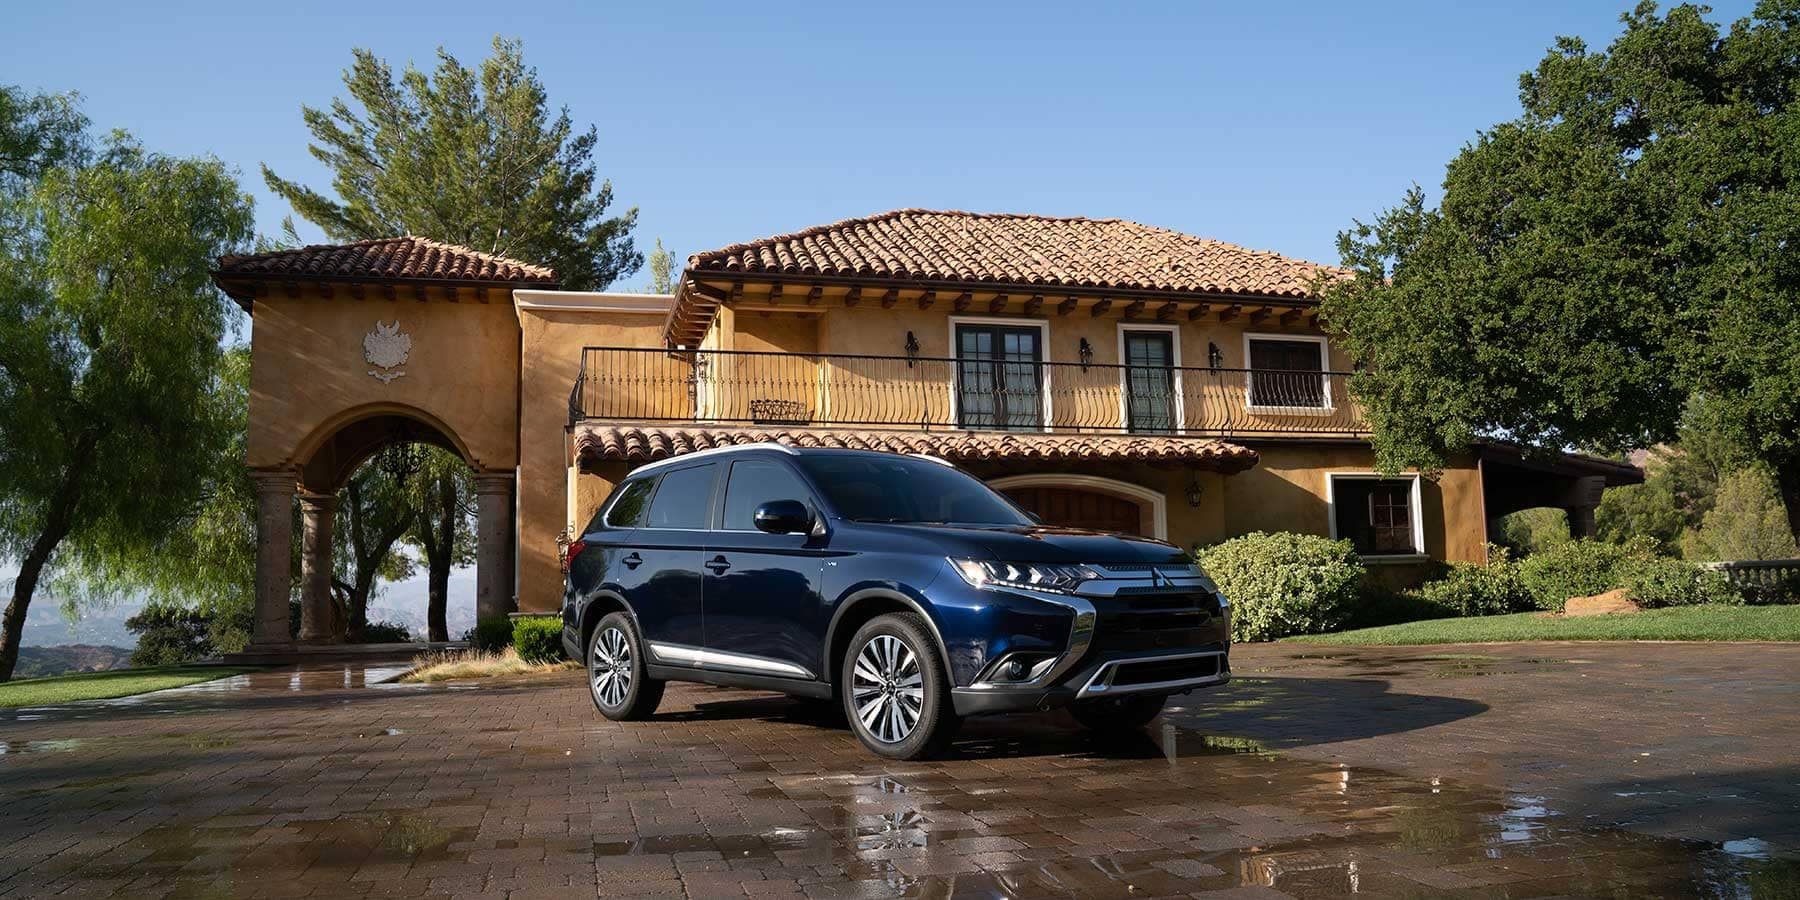 2019-Mitsubishi-Outlander parked in front of home with tiled rooftop